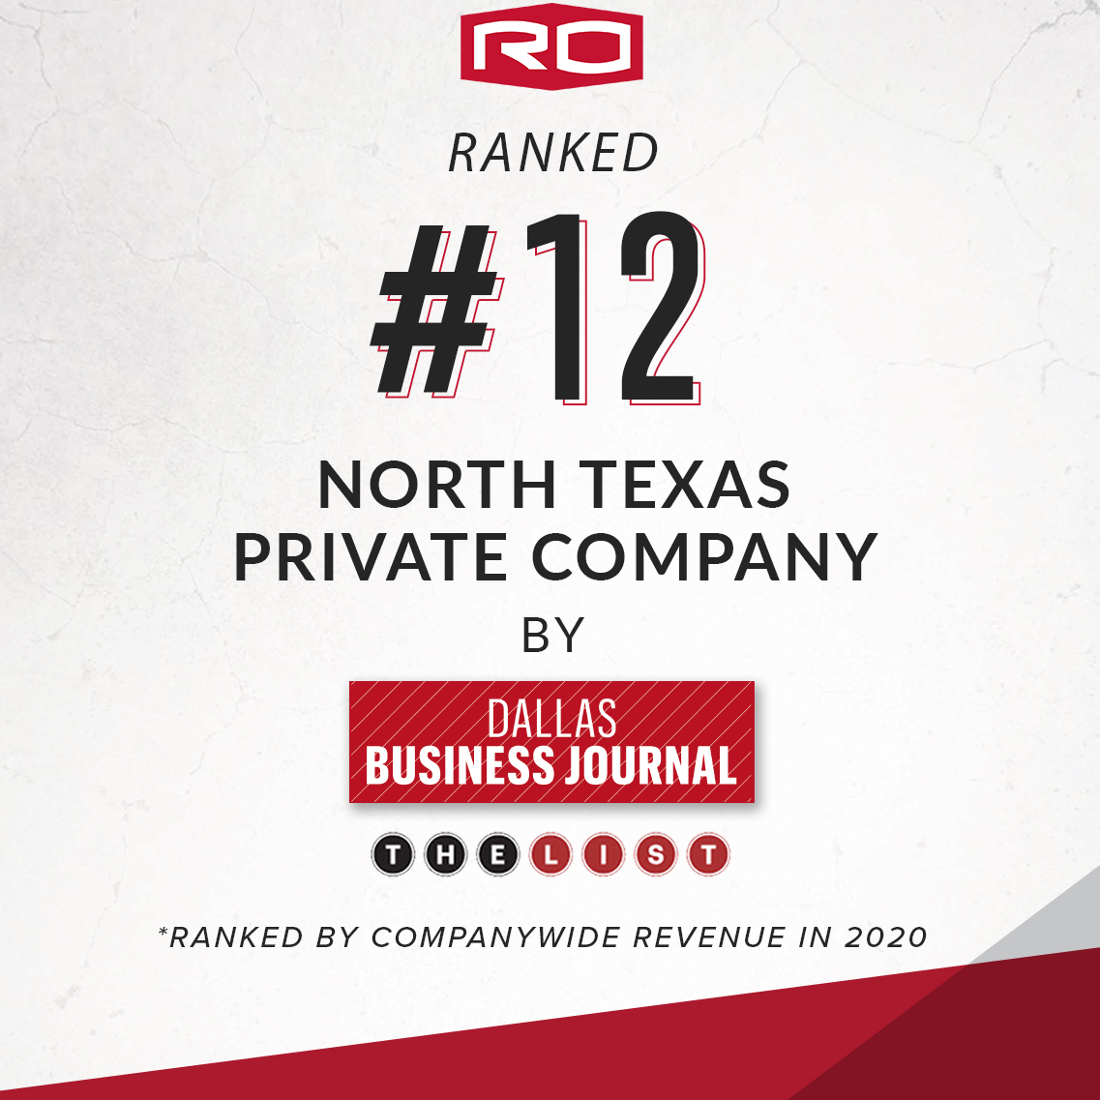 RO LISTED #12 NORTH TEXAS PRIVATE COMPANY